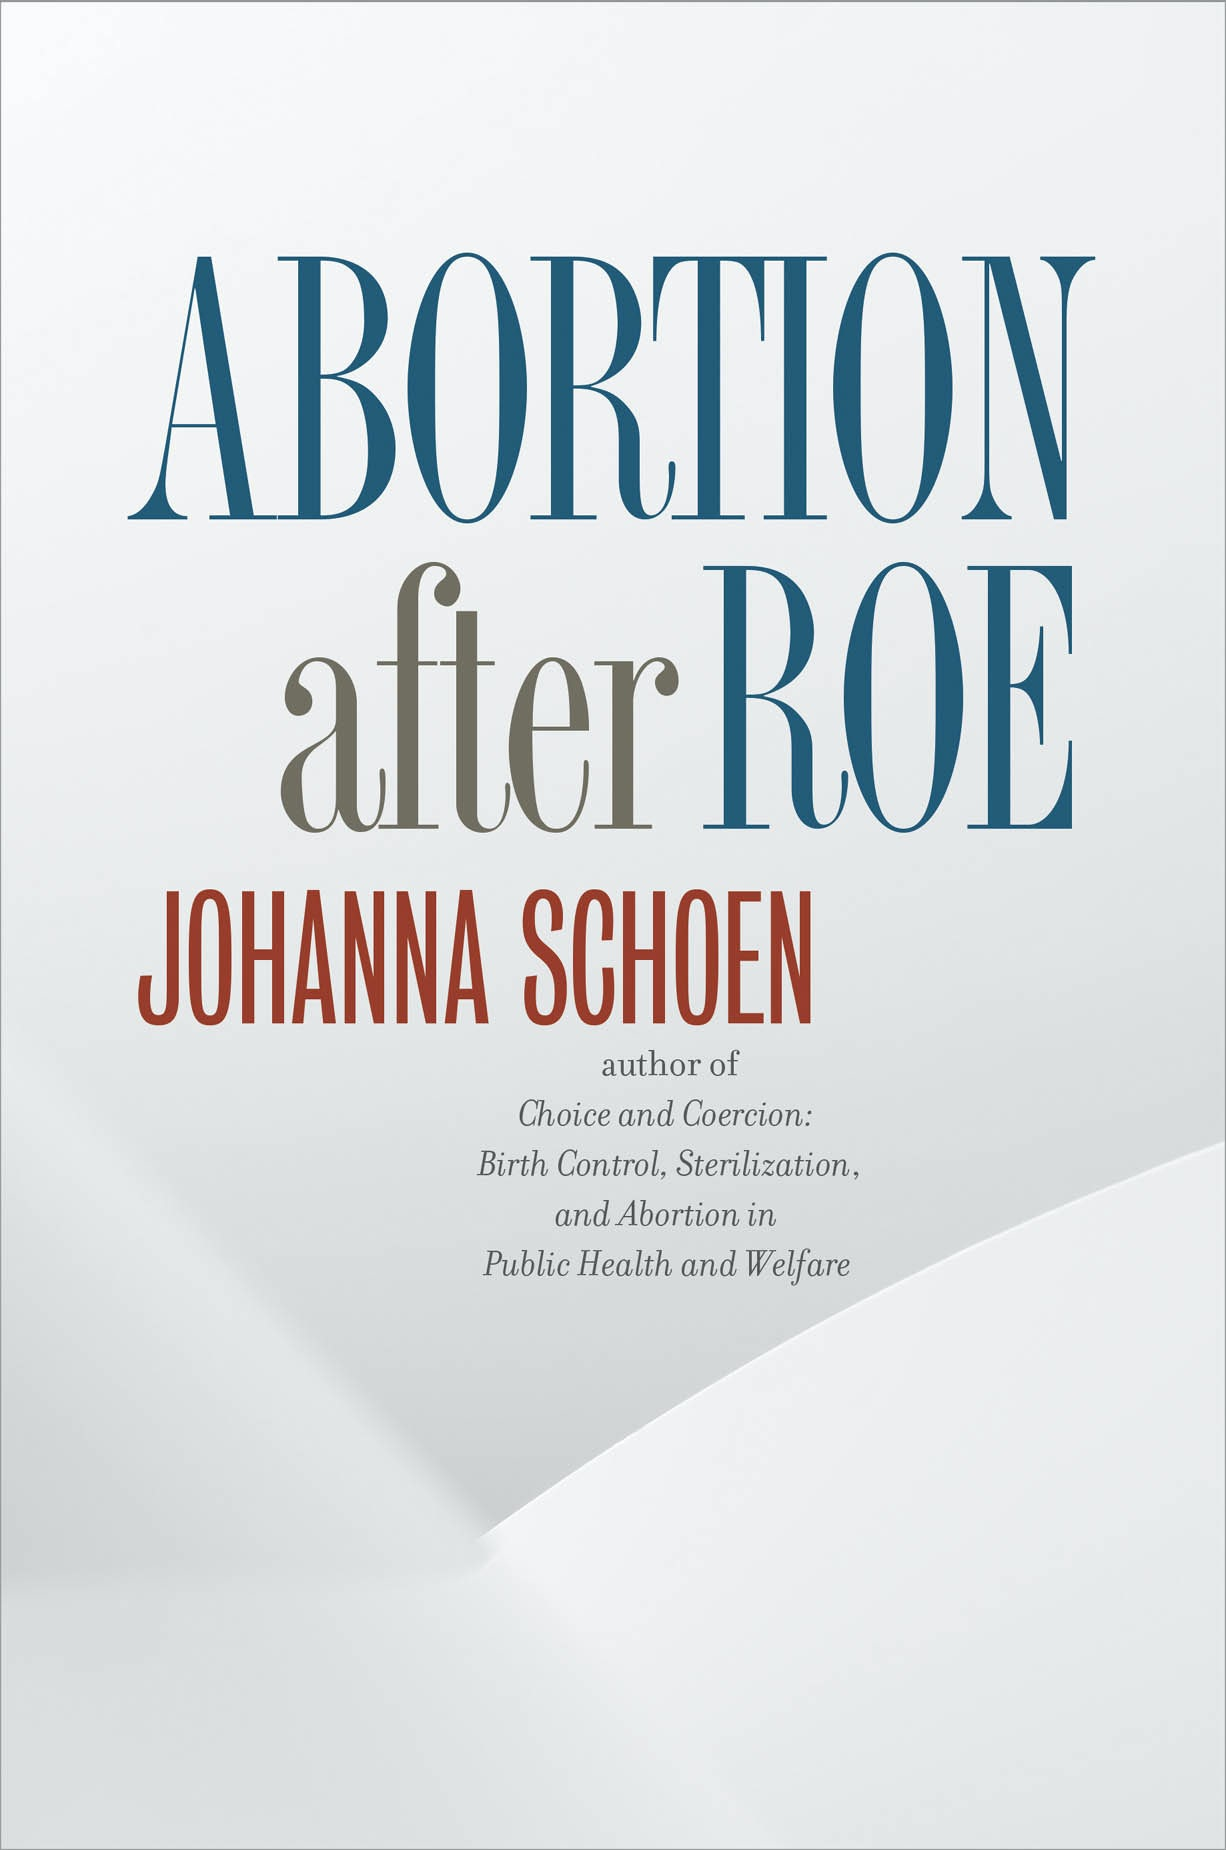 Abortion after Roe: Abortion after Legalization (Studies in Social Medicine)